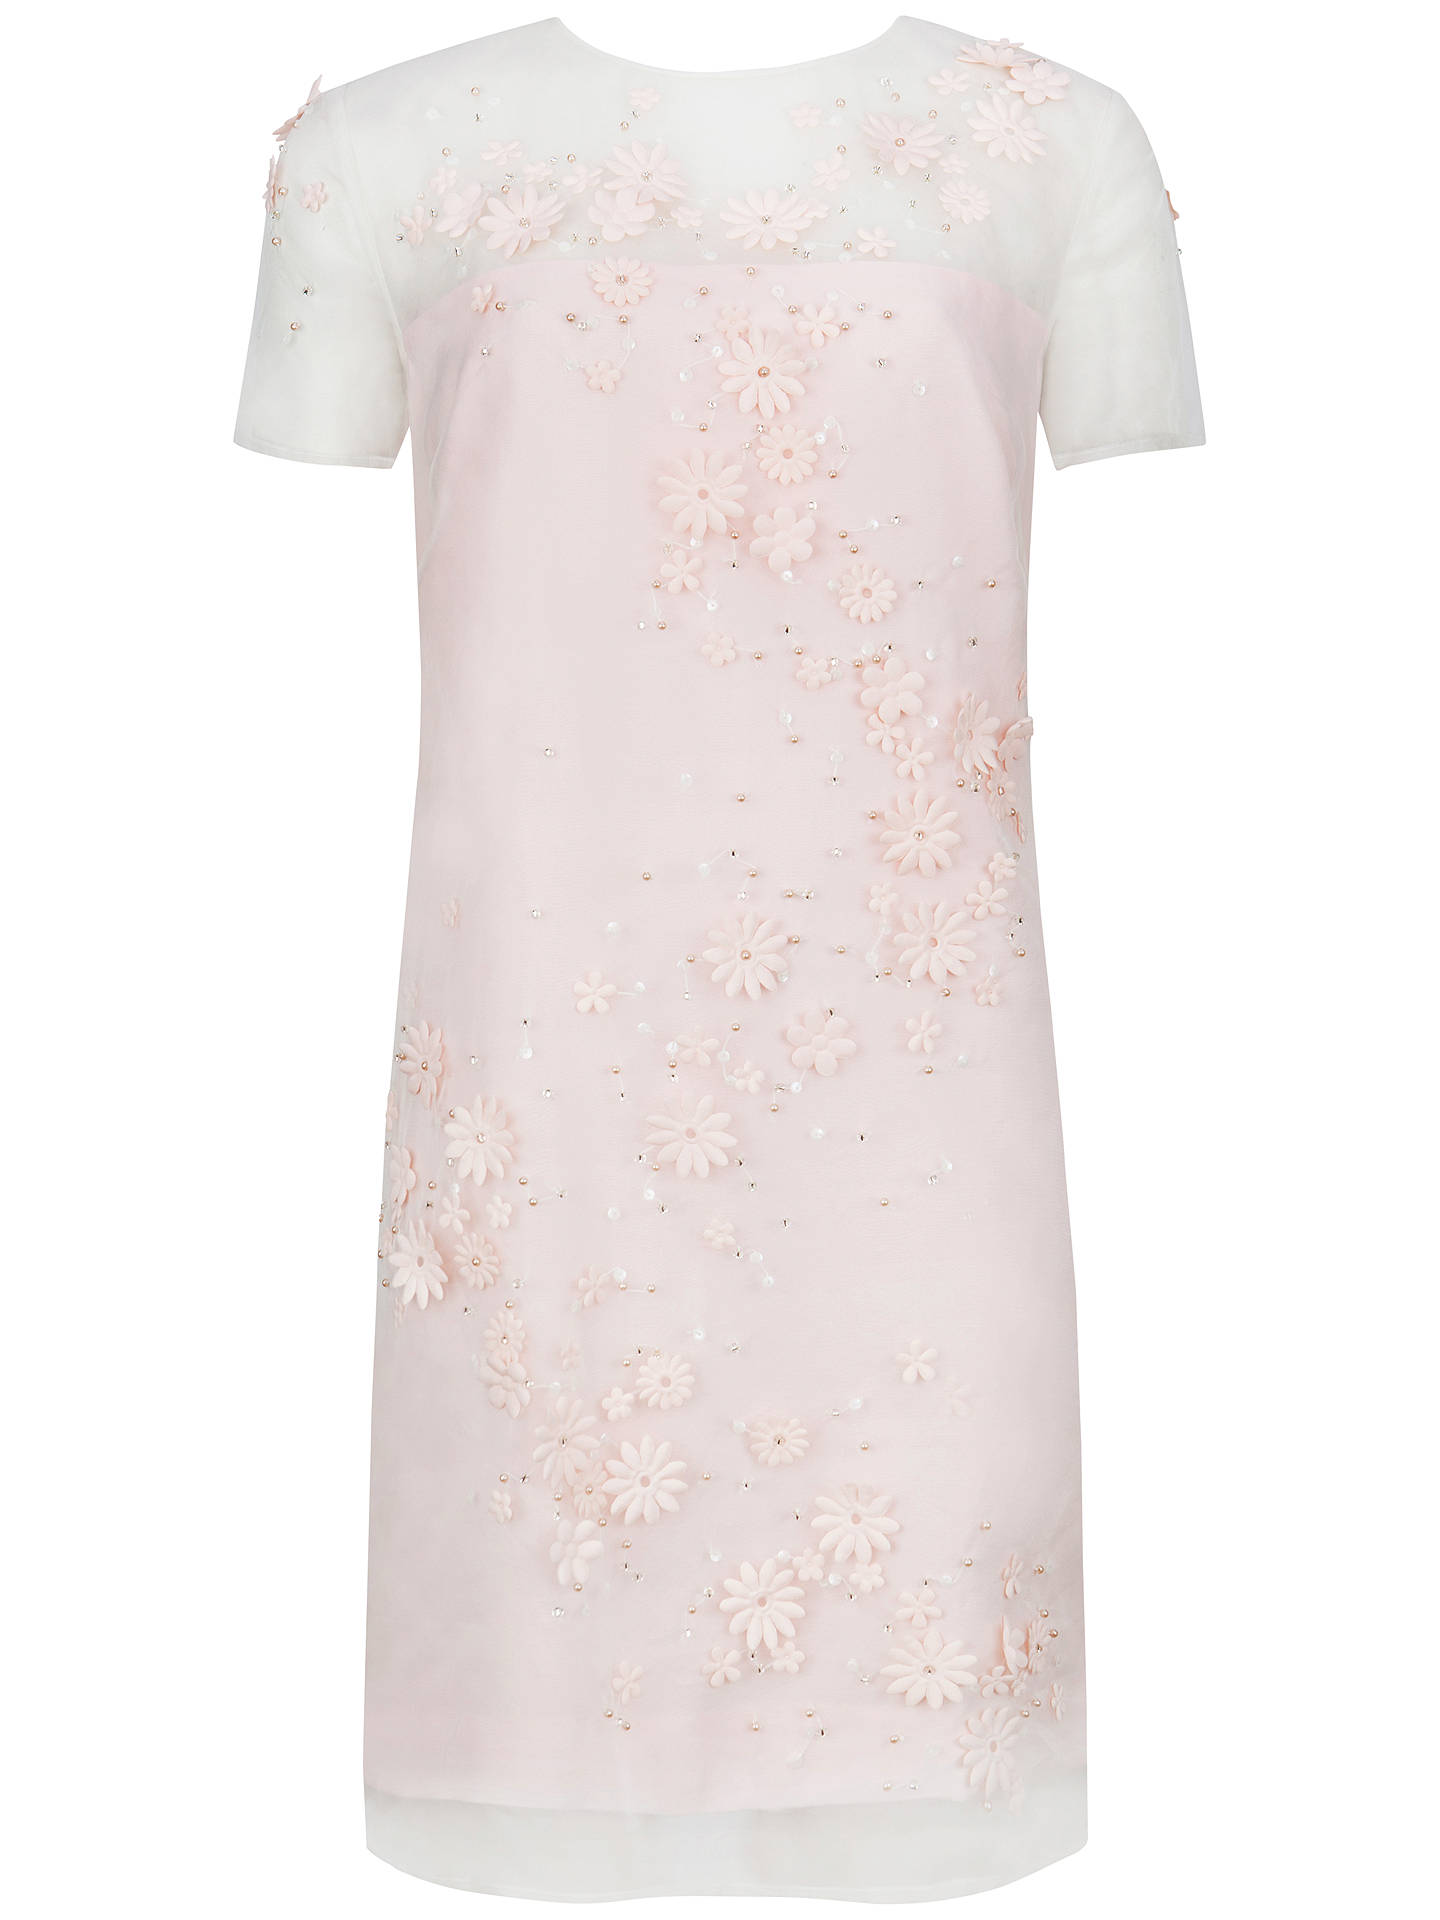 nude shoes white pink floral dress